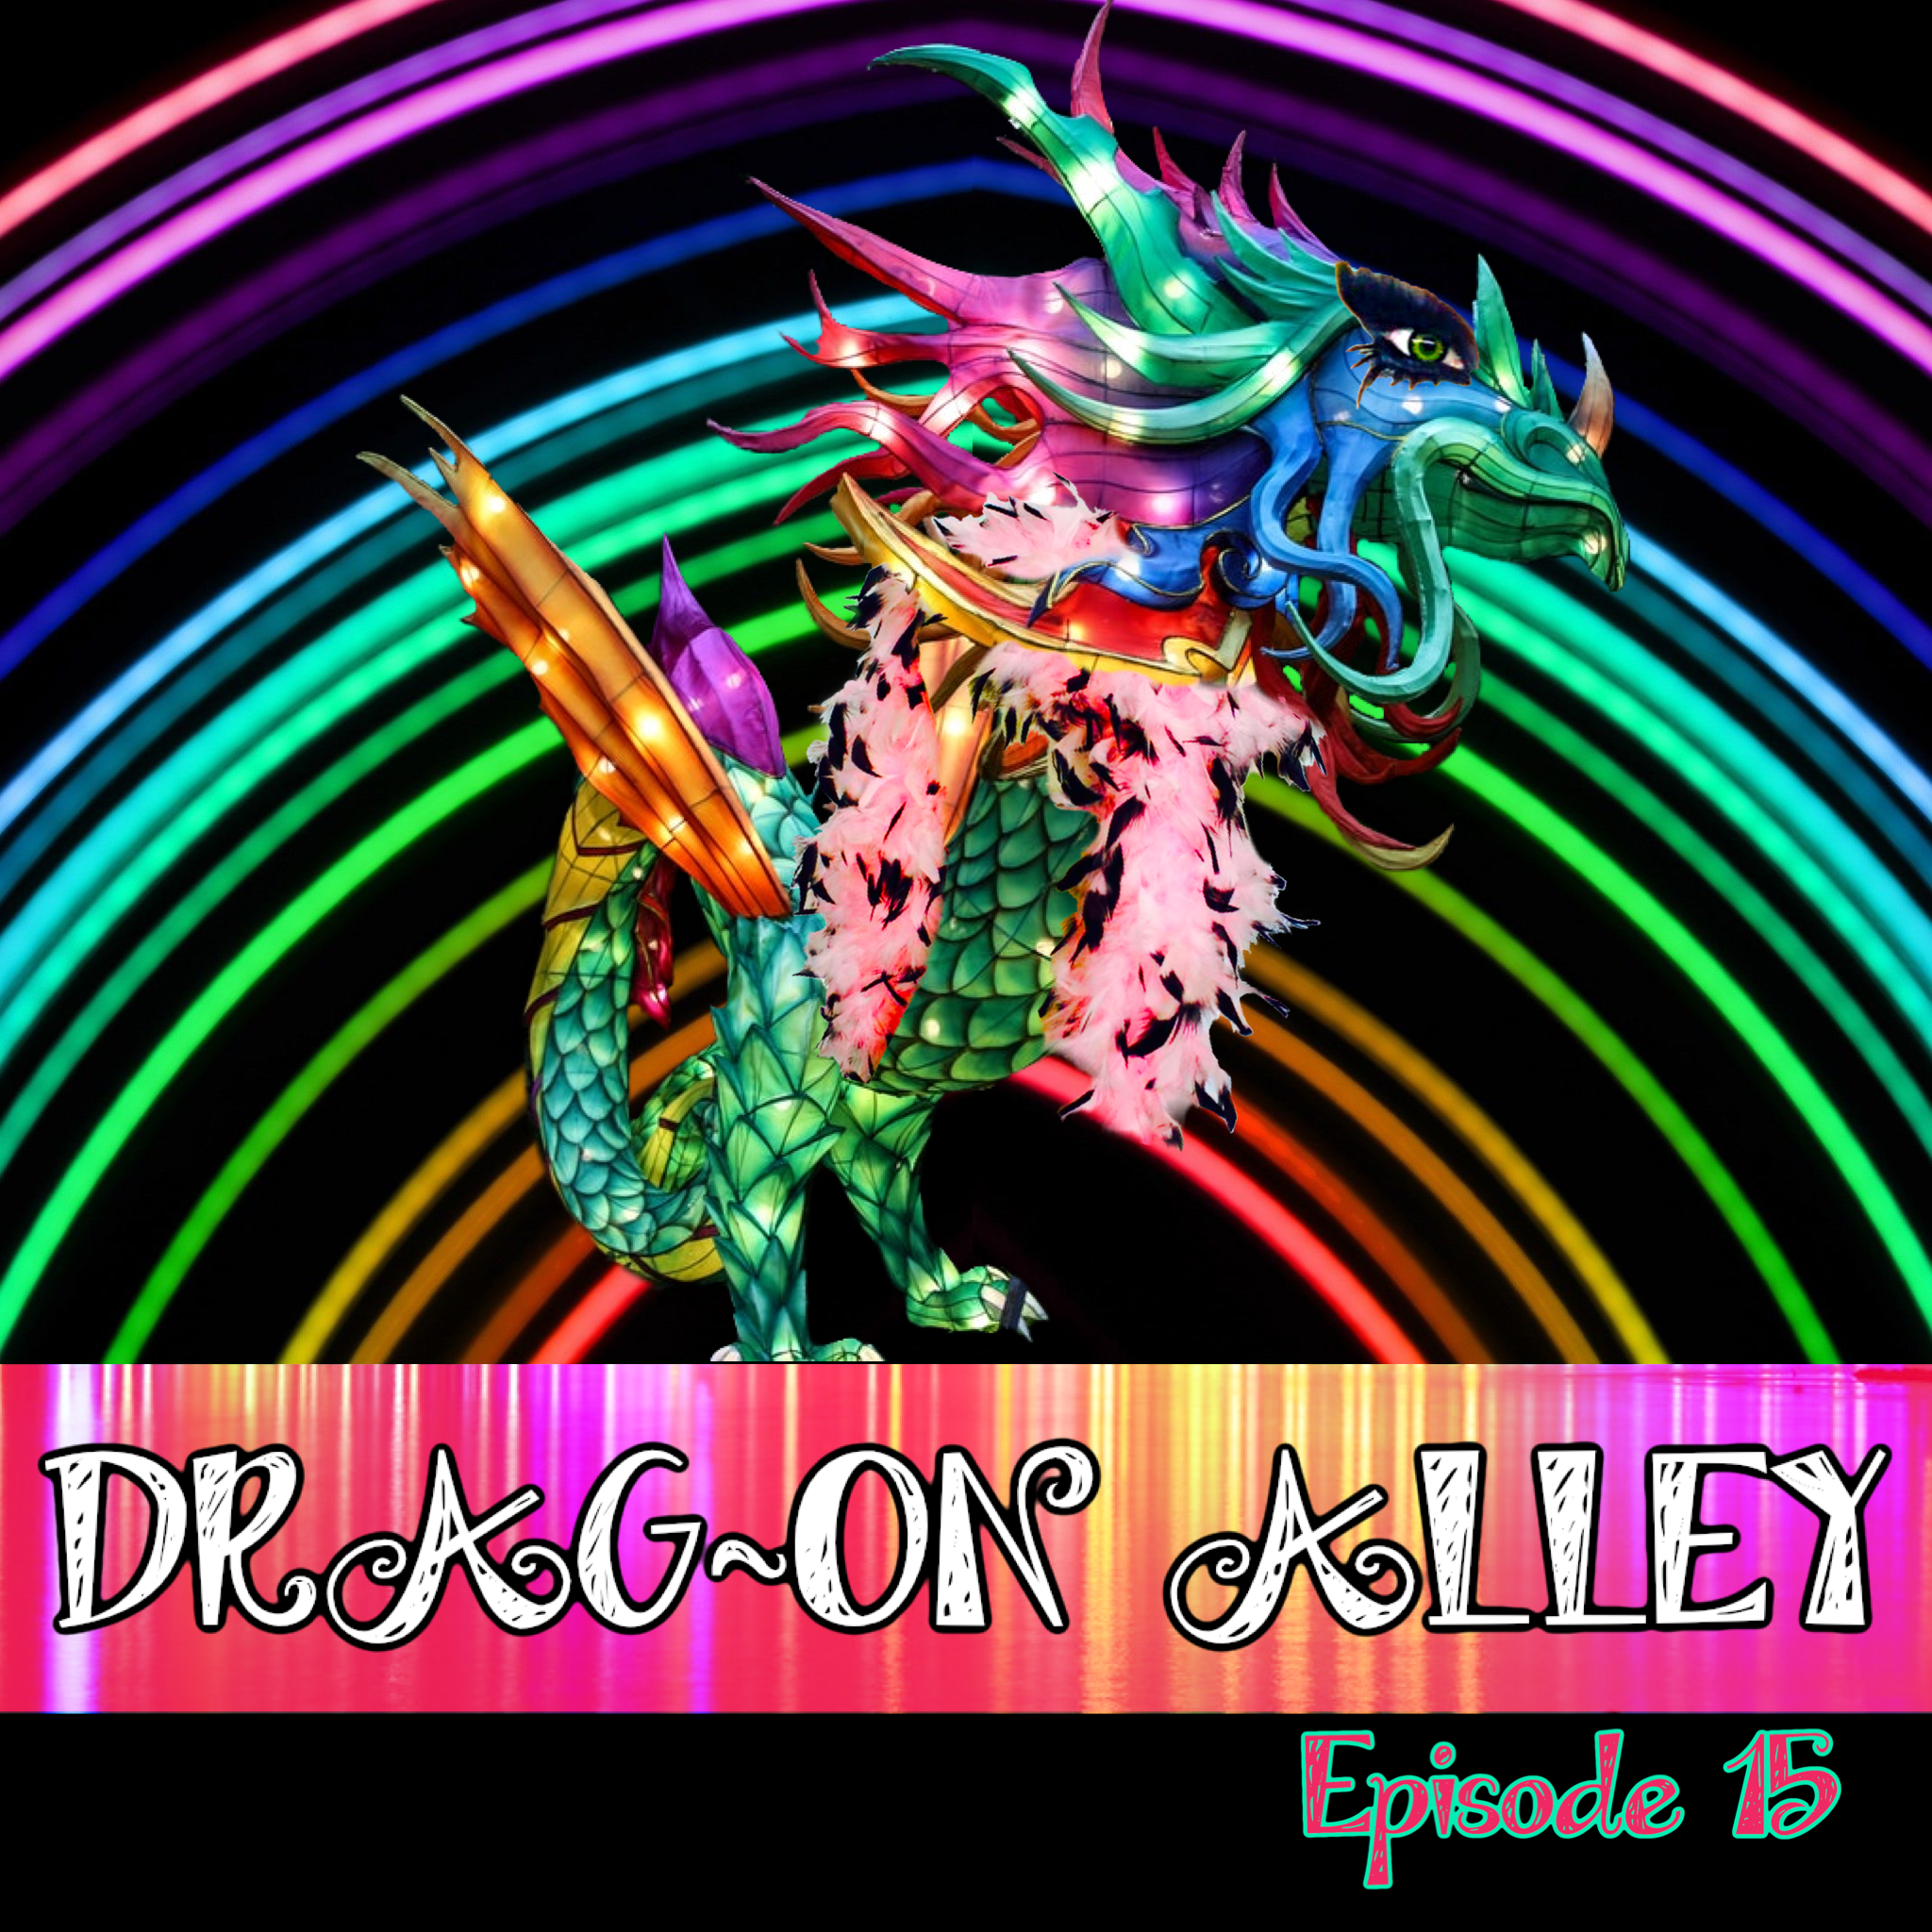 "A rainbow made of glow sticks on a black background. In front of that, a brightly colored dragon wearing a pink feather boa and extravagant eye makeup. Across the bottom is a pink and yellow streaked rectangle that says, ""Drag-on alley."""